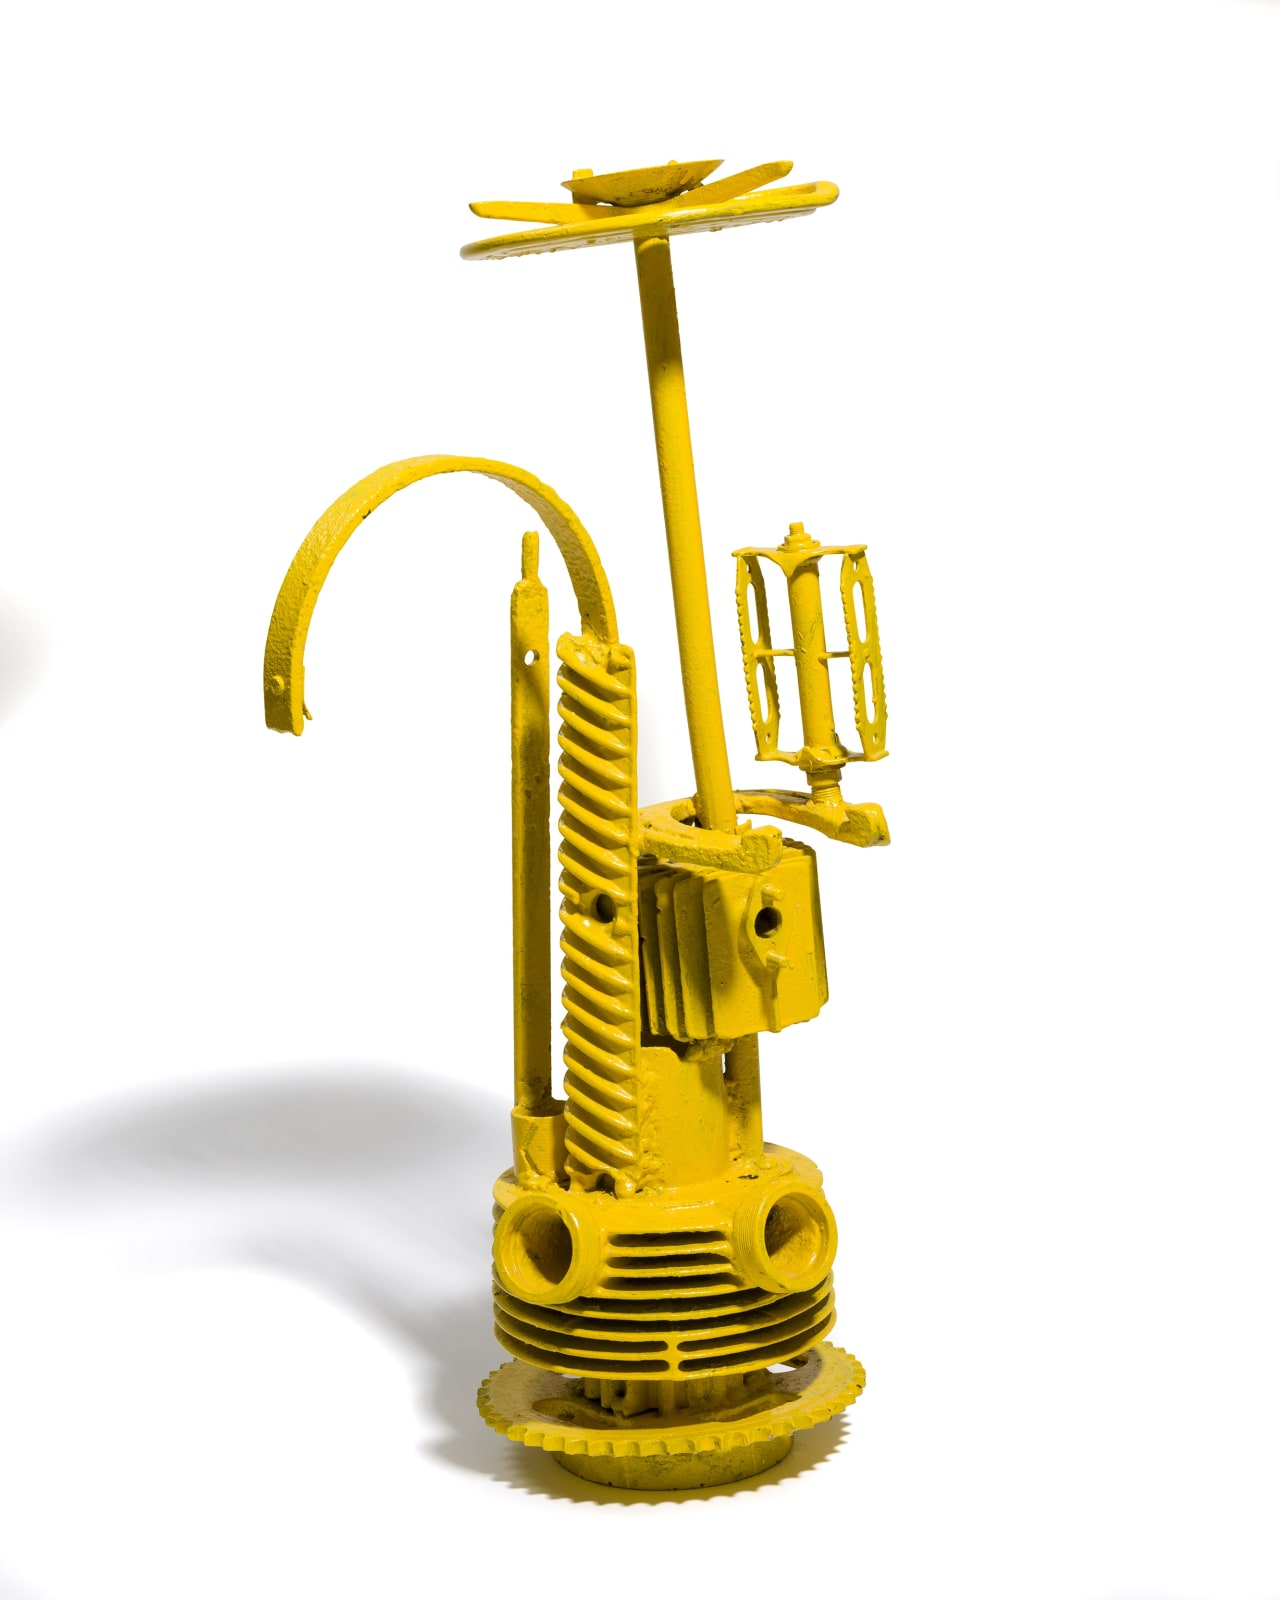 STANO FILKO, Model of Observation Tower - Yellow, 1966 - 1967